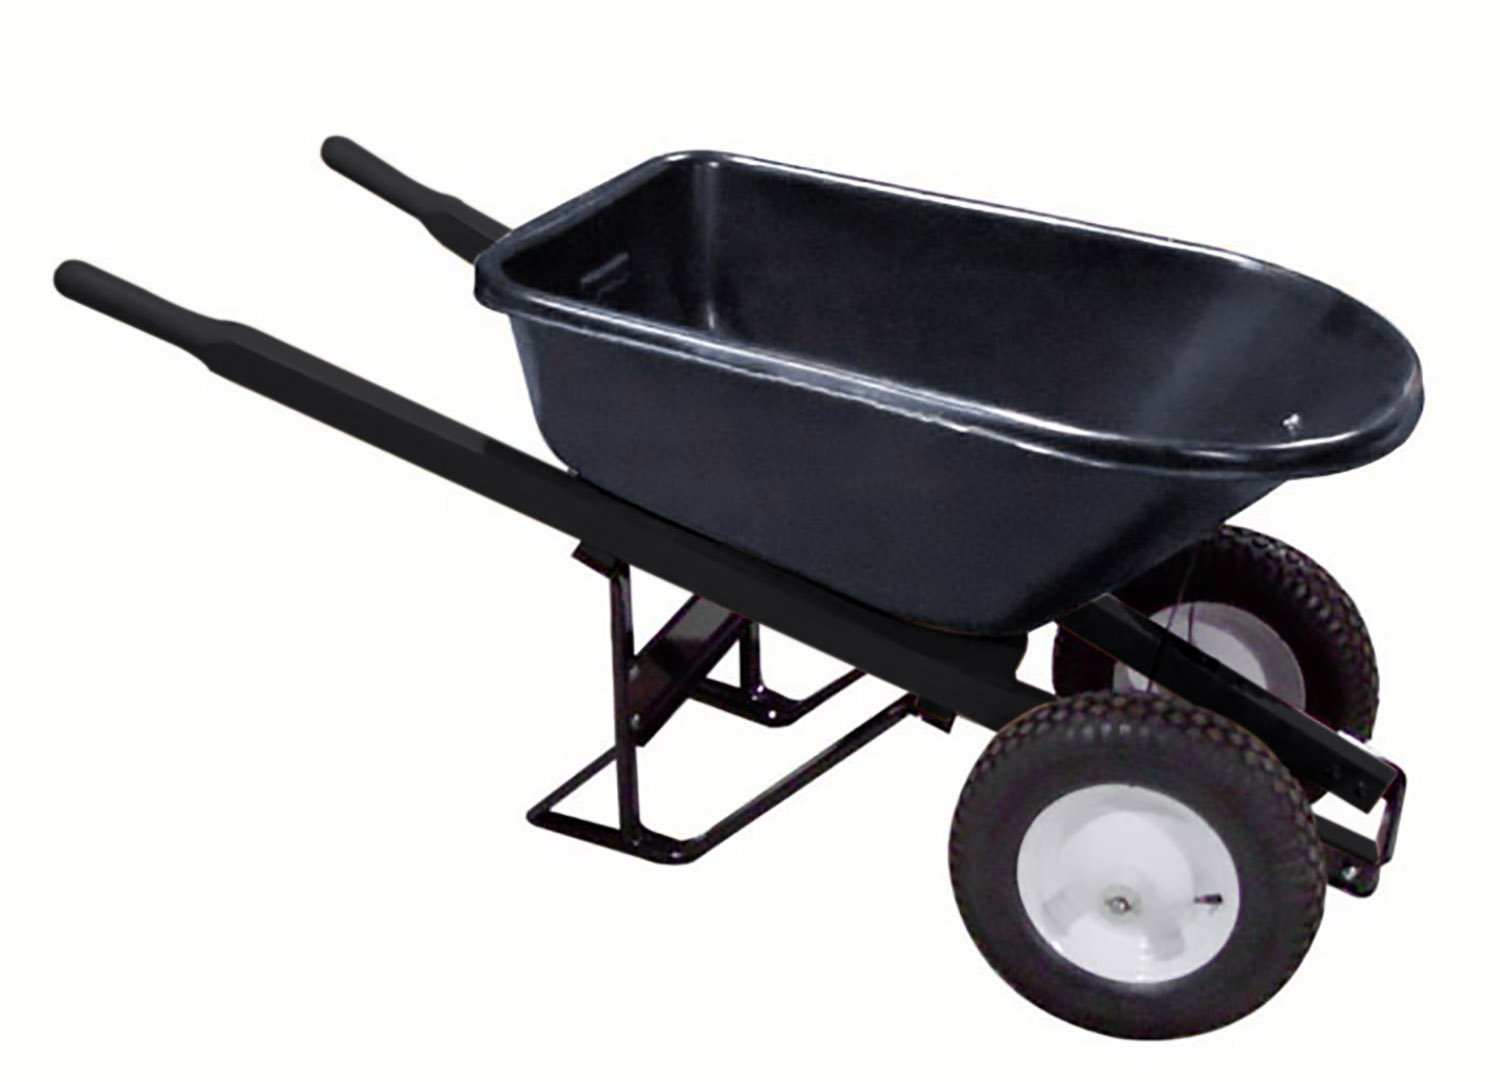 Bon 28 909 Premium Contractor Grade Poly-Tray Double Wheel Wheelbarrow with Steel Handle and Ribbed Tire, 5-3/4 Cubic Feet